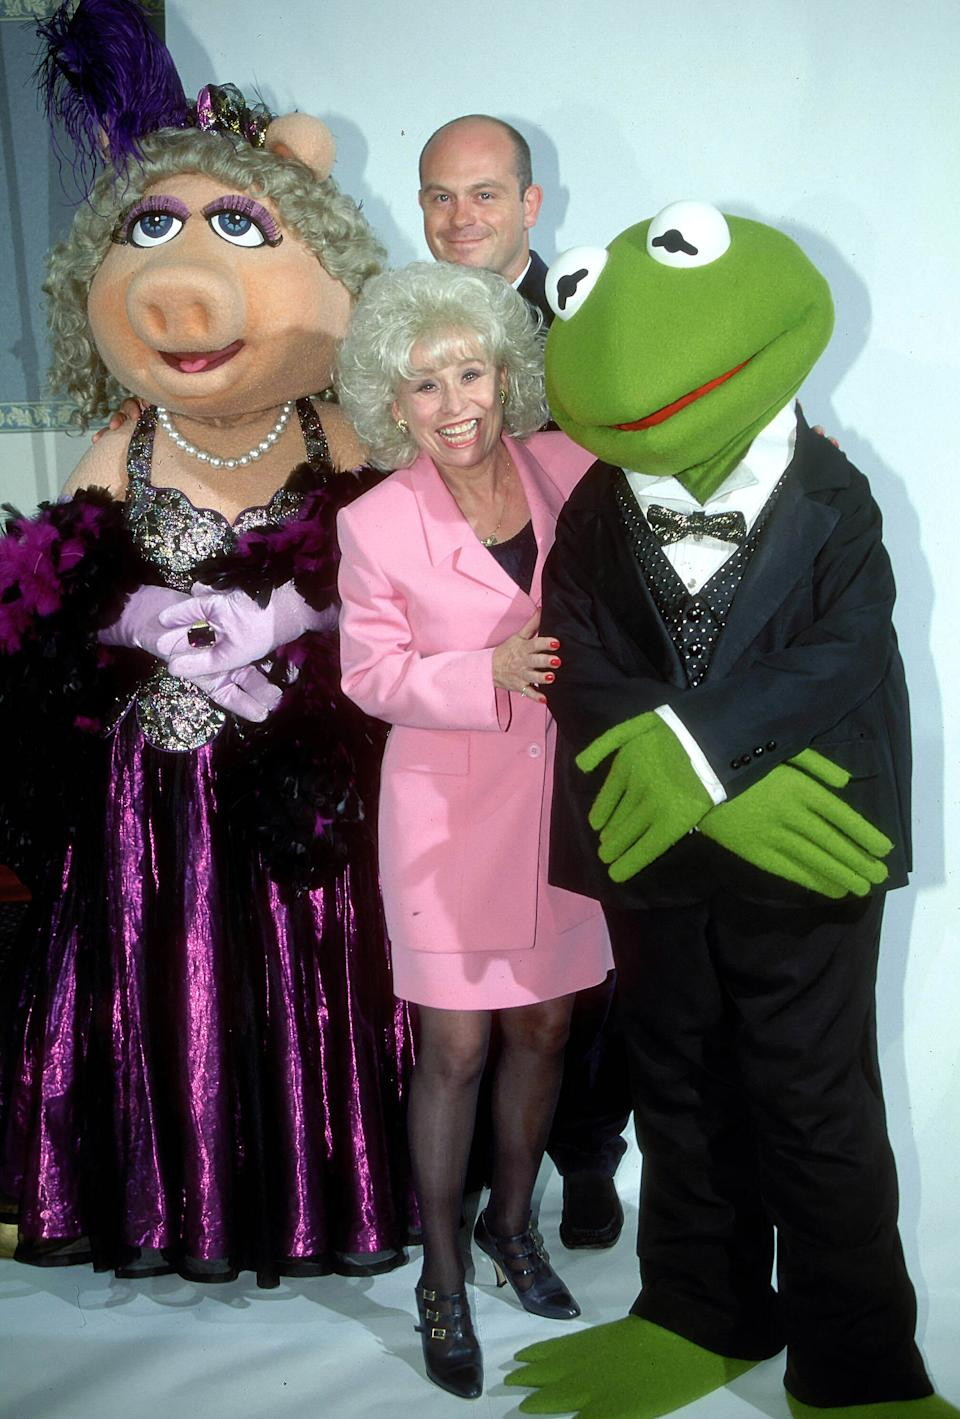 English actors Barbara Windsor and Ross Kemp from the television soap 'Eastenders' meet Miss Piggy and Kermit The Frog from 'The Muppet Show', 1996. (Photo by Larry Ellis Collection/Getty Images)